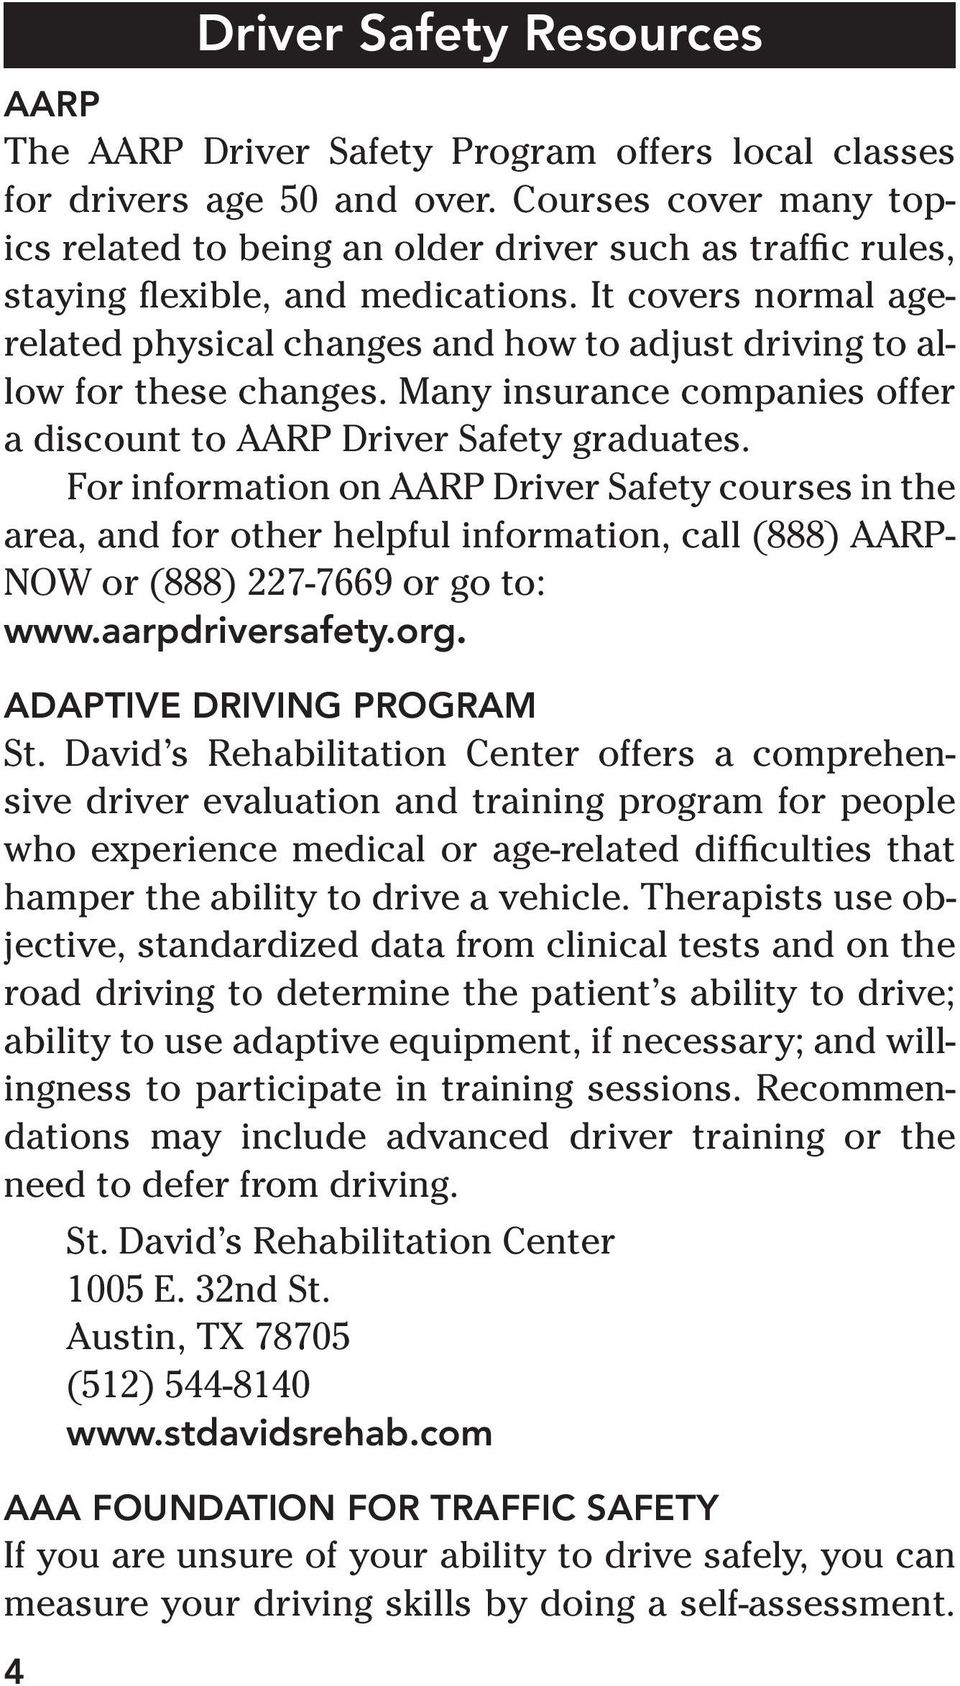 It covers normal agerelated physical changes and how to adjust driving to allow for these changes. Many insurance companies offer a discount to AARP Driver Safety graduates.